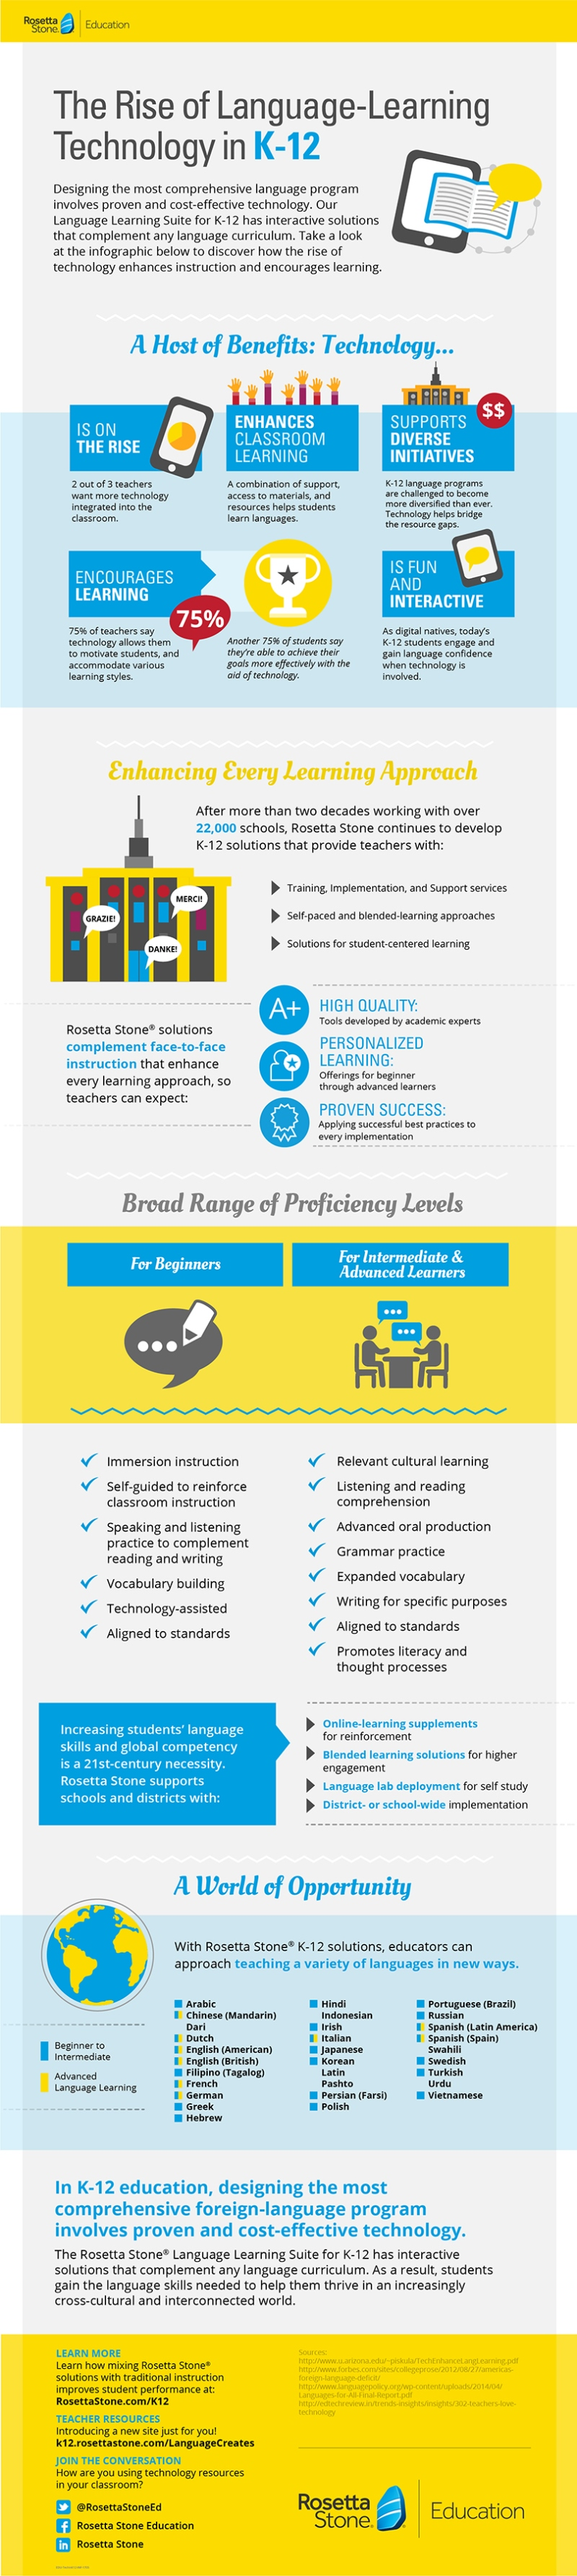 blended-learning solutions